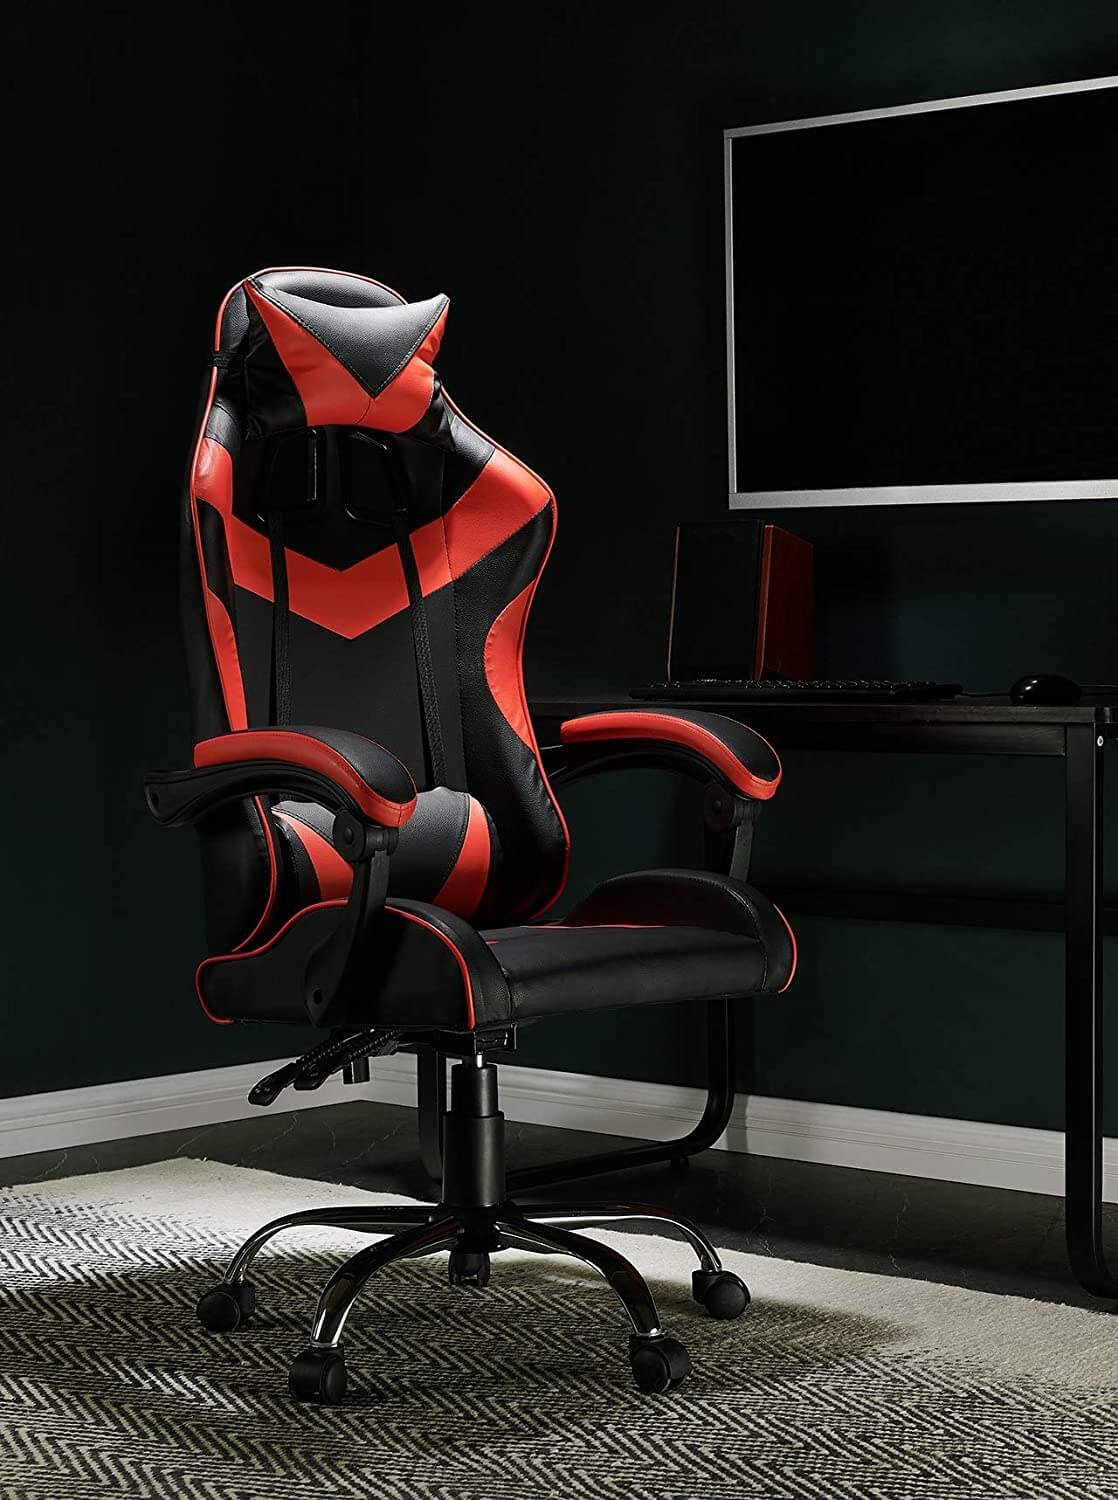 Ergonomic Gaming Chair with Swivel Gas Lift